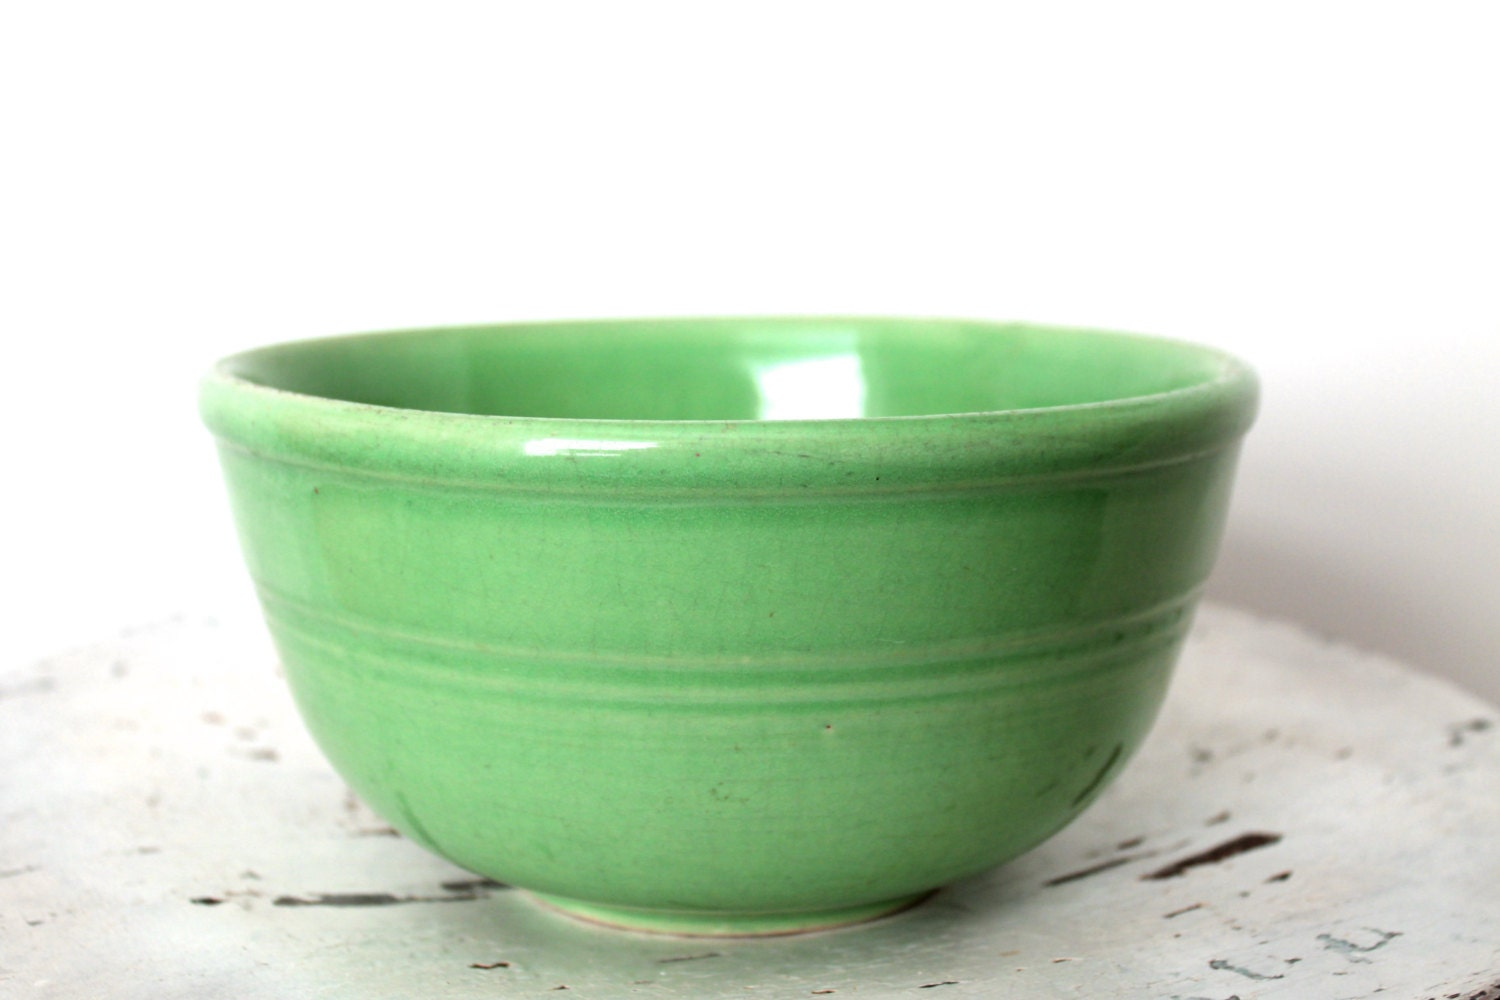 Vintage Celadon Green Mixing Bowl By Vintagearcheology On Etsy